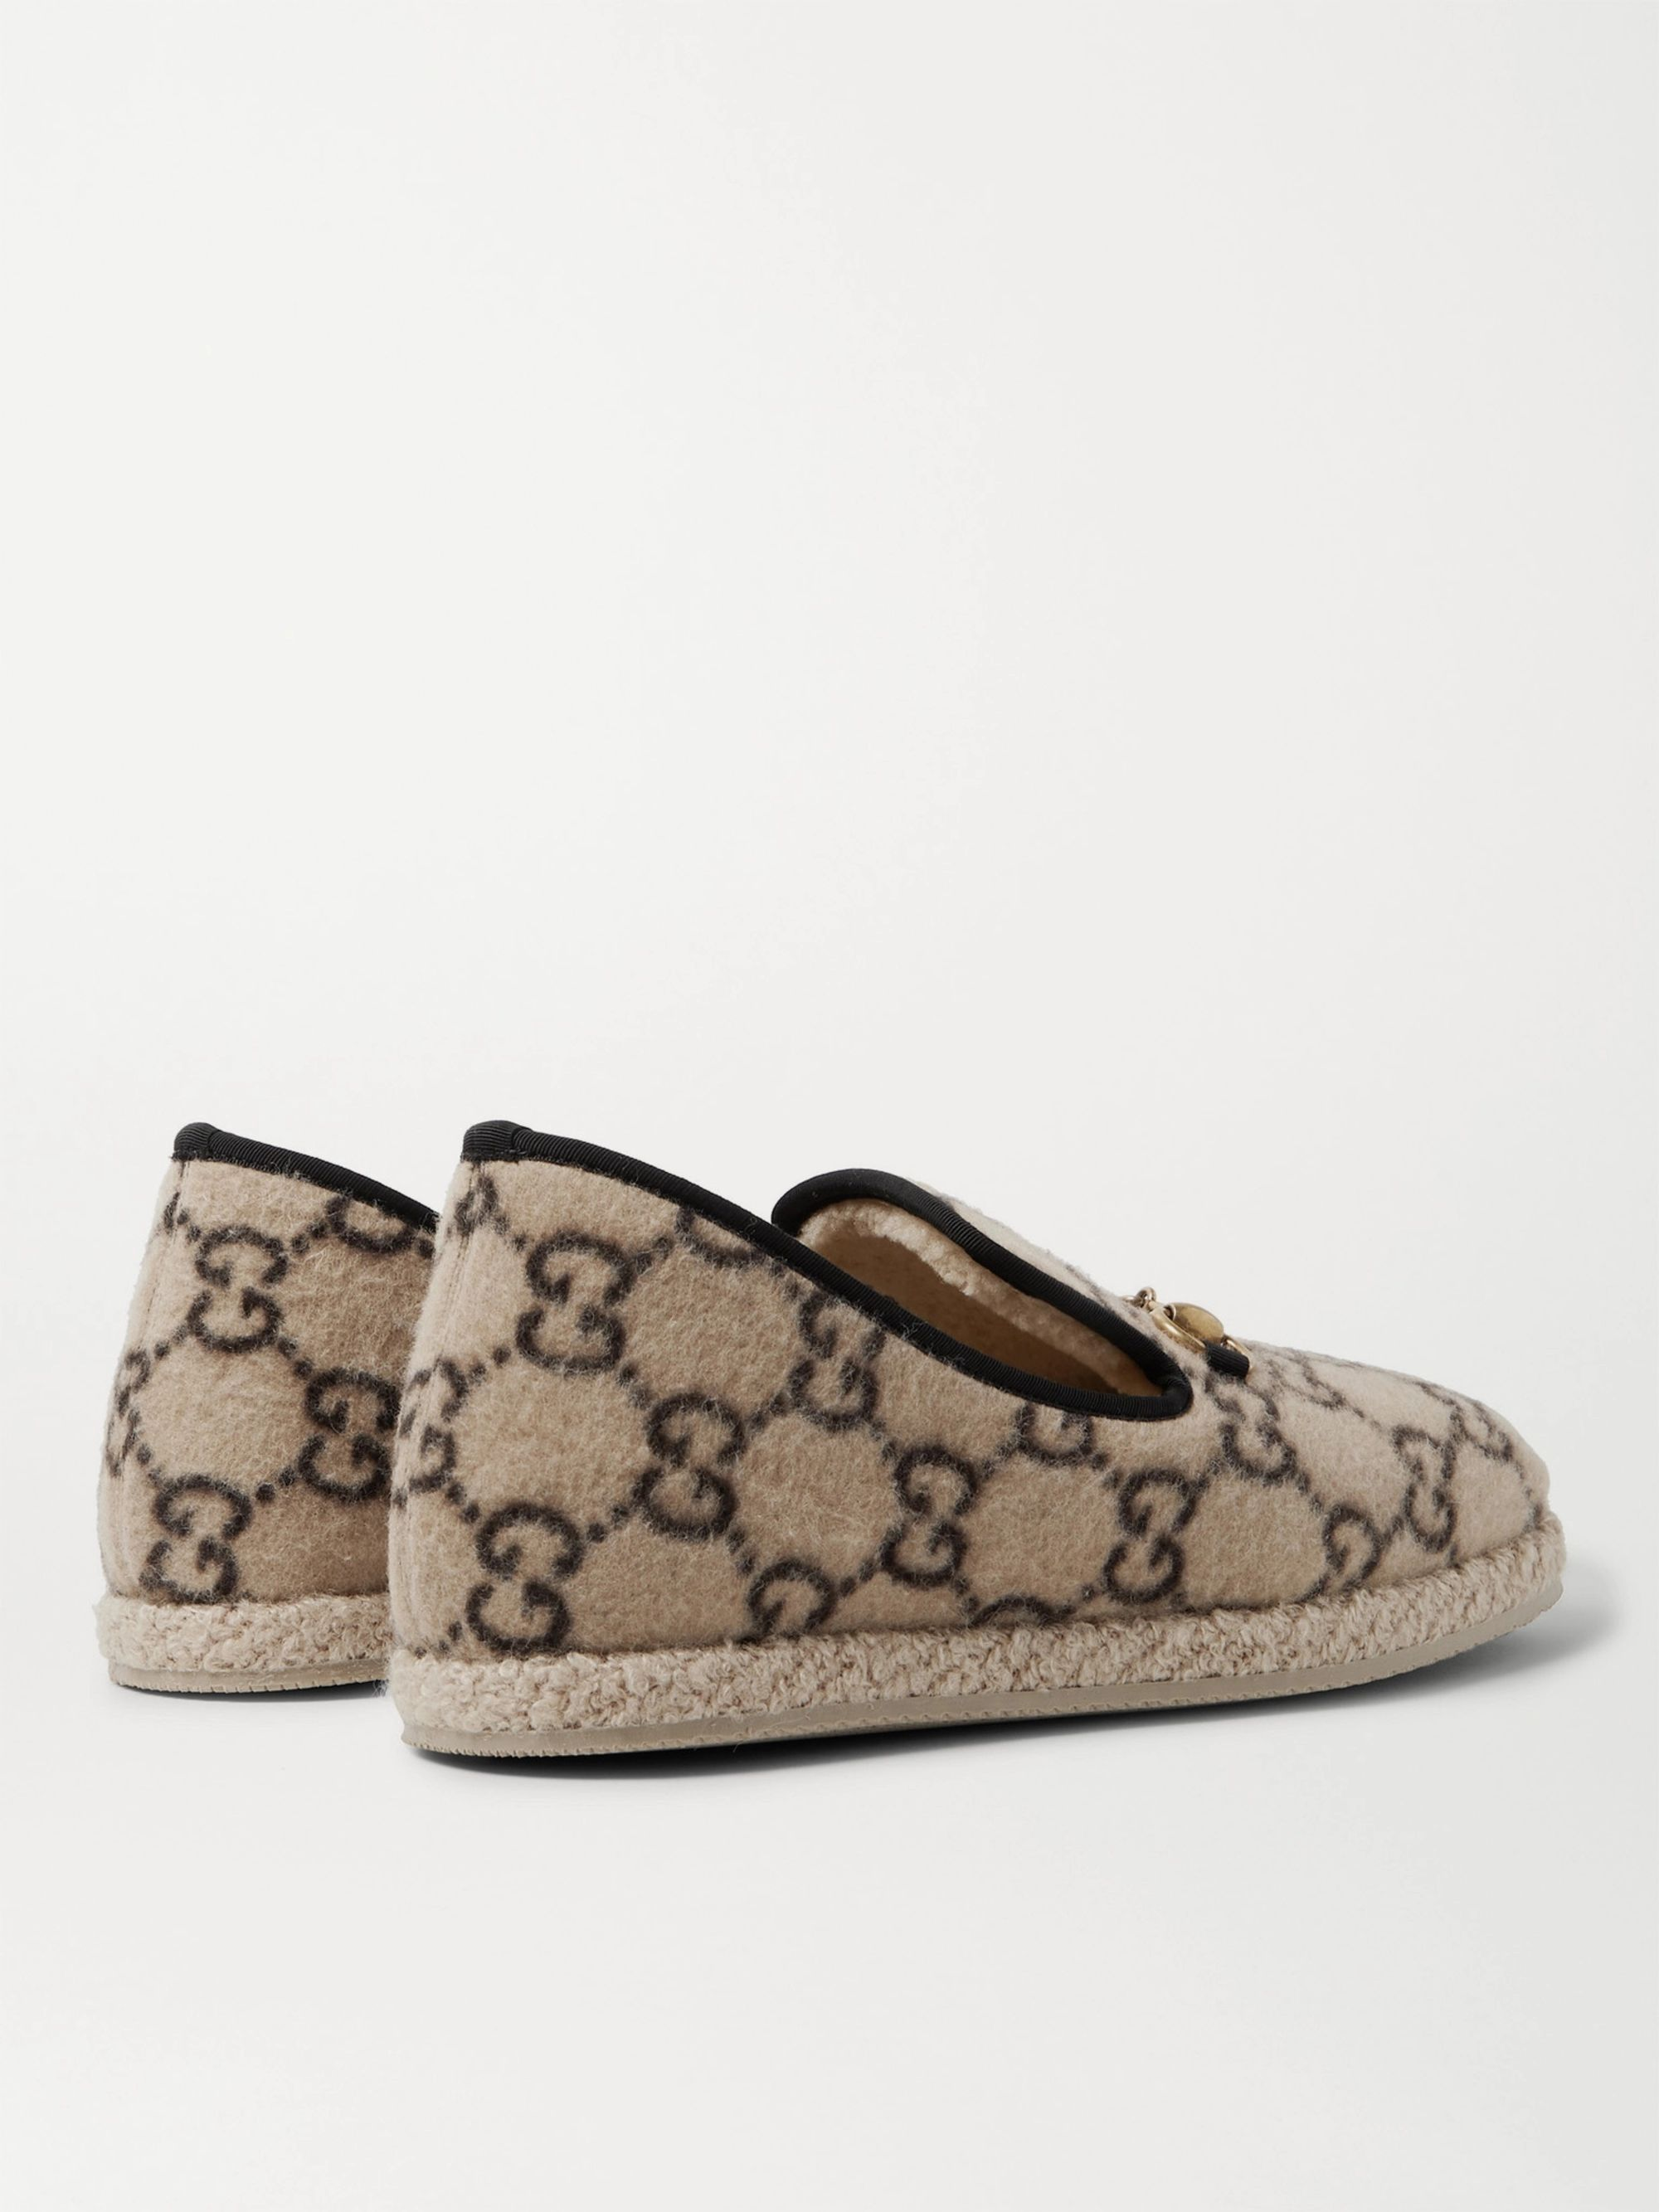 Gucci Horsebit Logo-Print Merino Wool Loafers